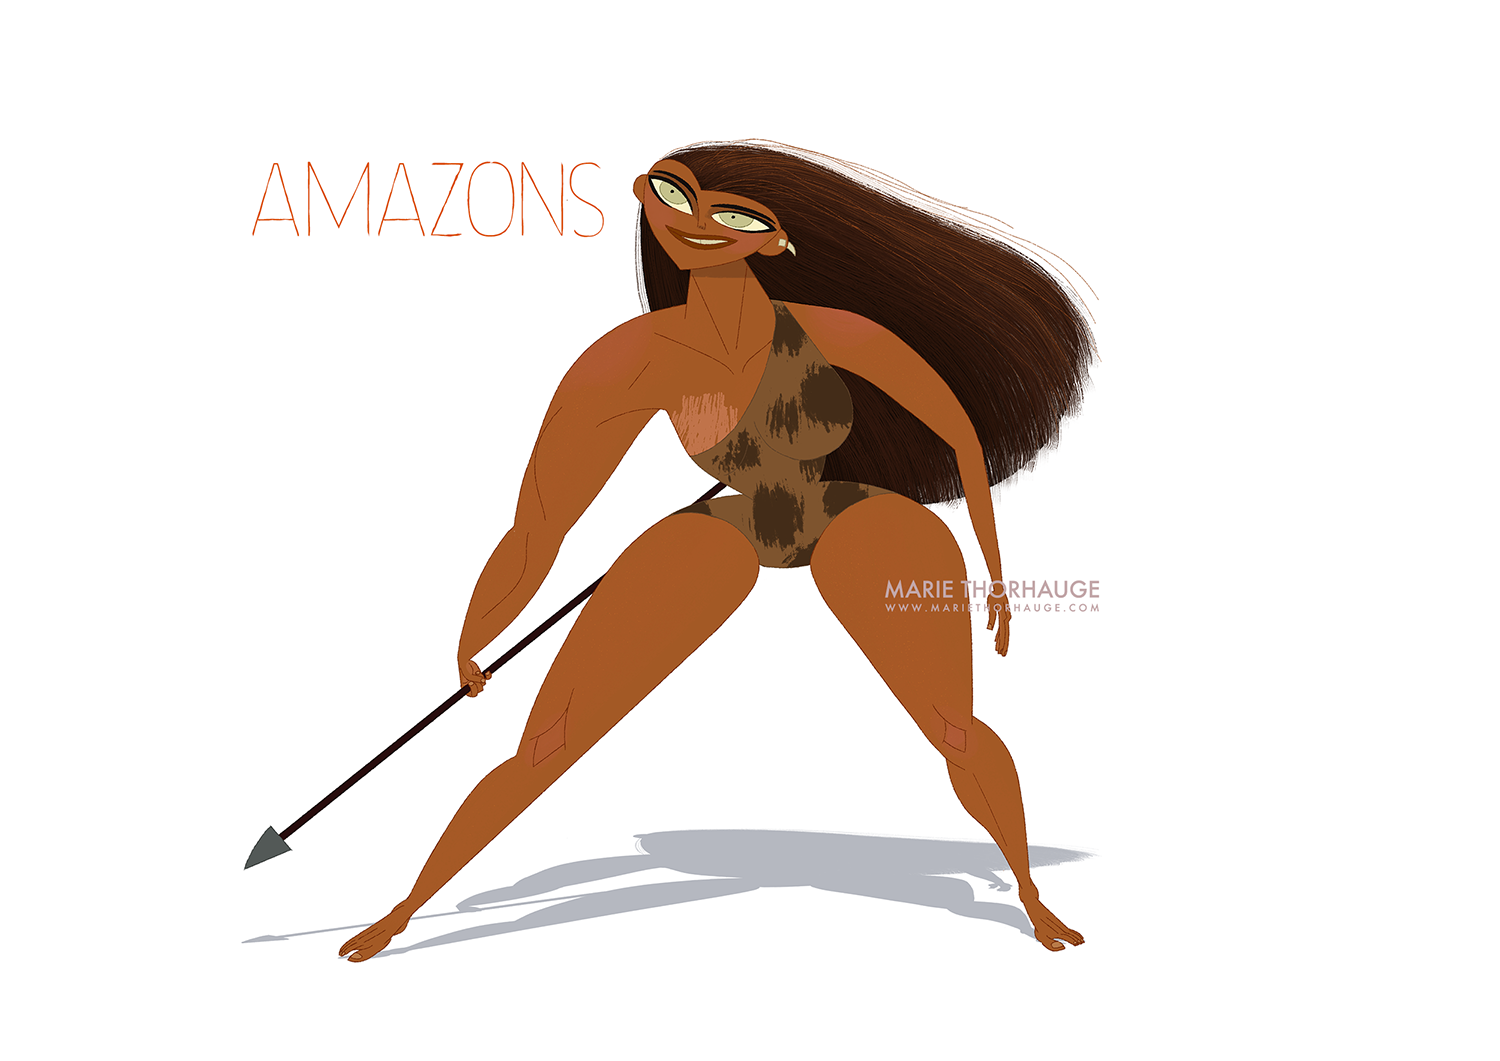 2016_Marie-Thorhauge_Amazon02.png